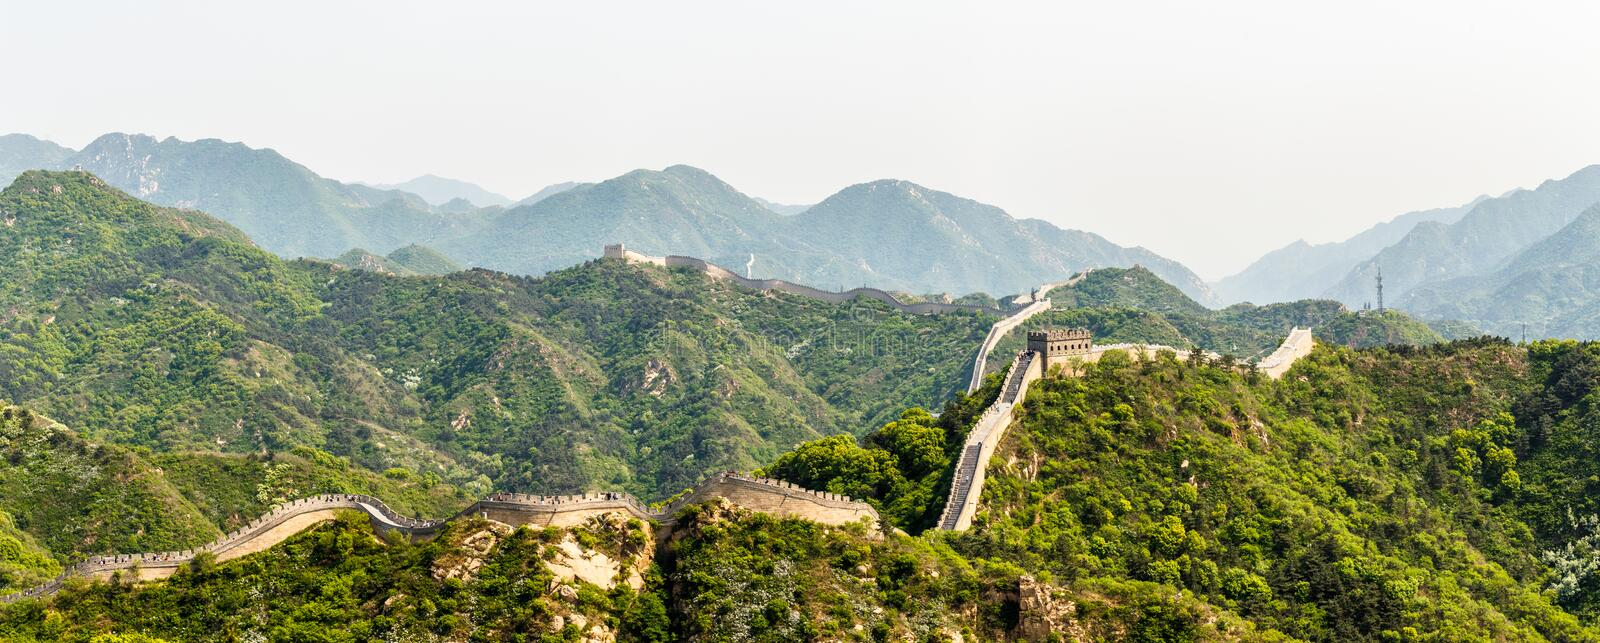 Panorama of Great Wall of China among the mountains near Beijing royalty free stock photography